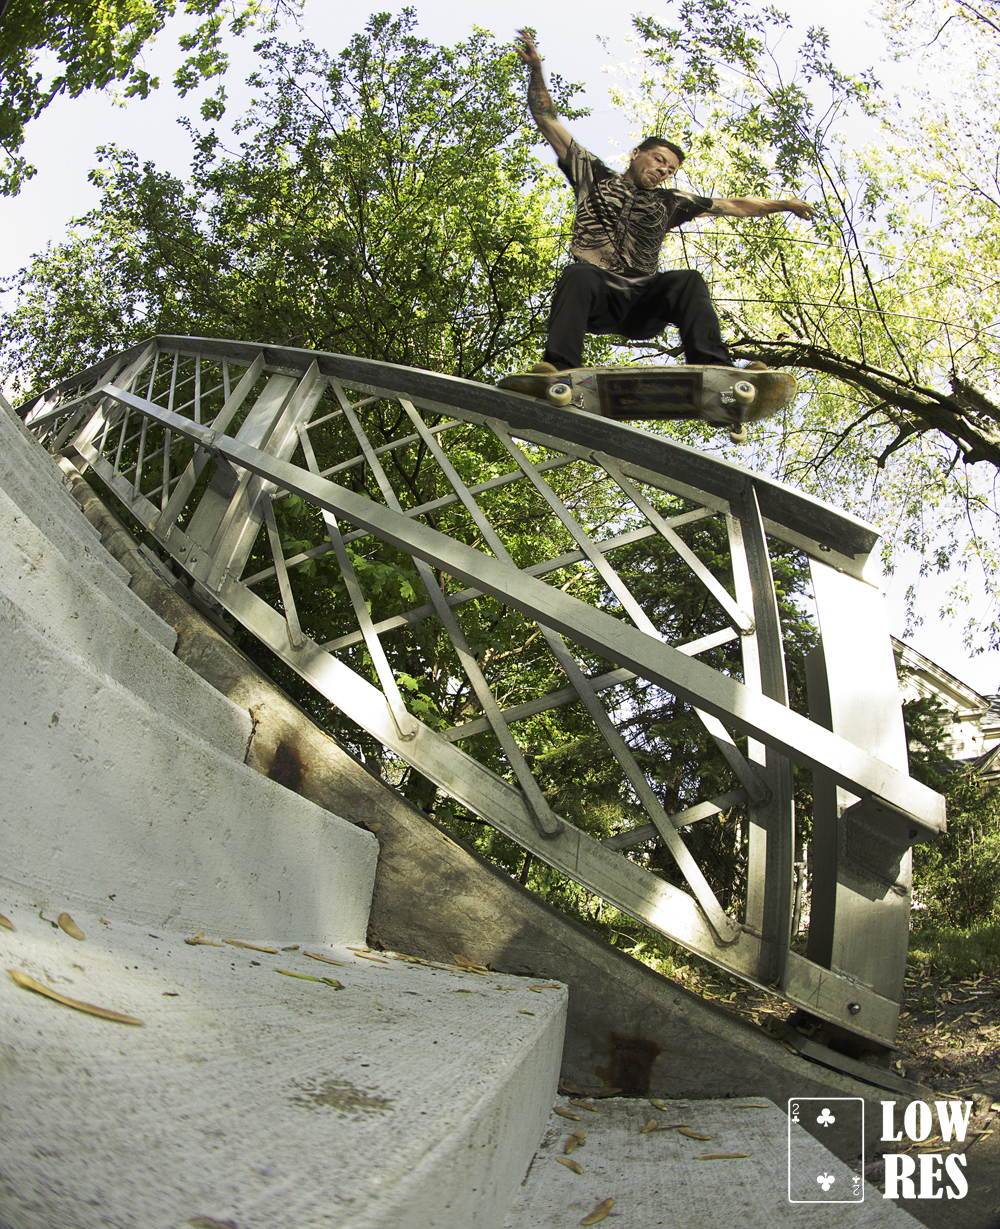 Derek Acosta - back 5o - Howell, MI - Eddie liddy